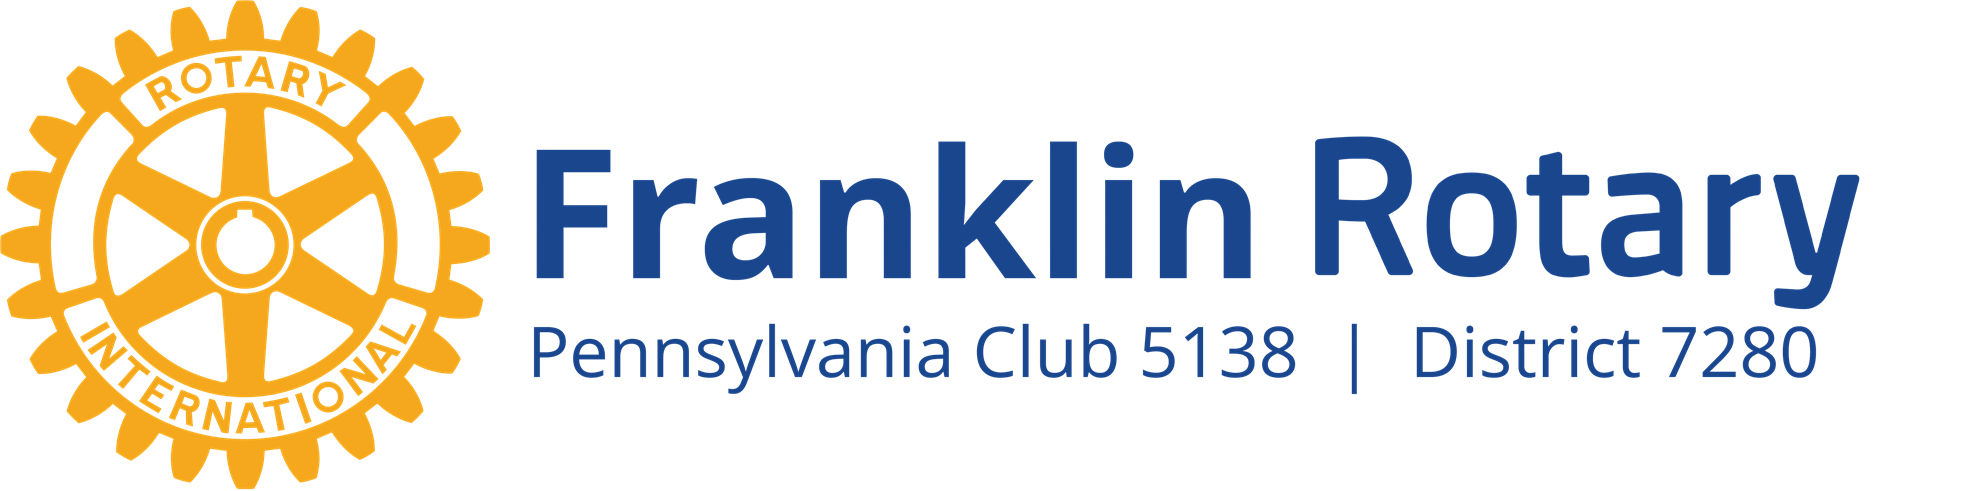 Franklin Rotary Club logo